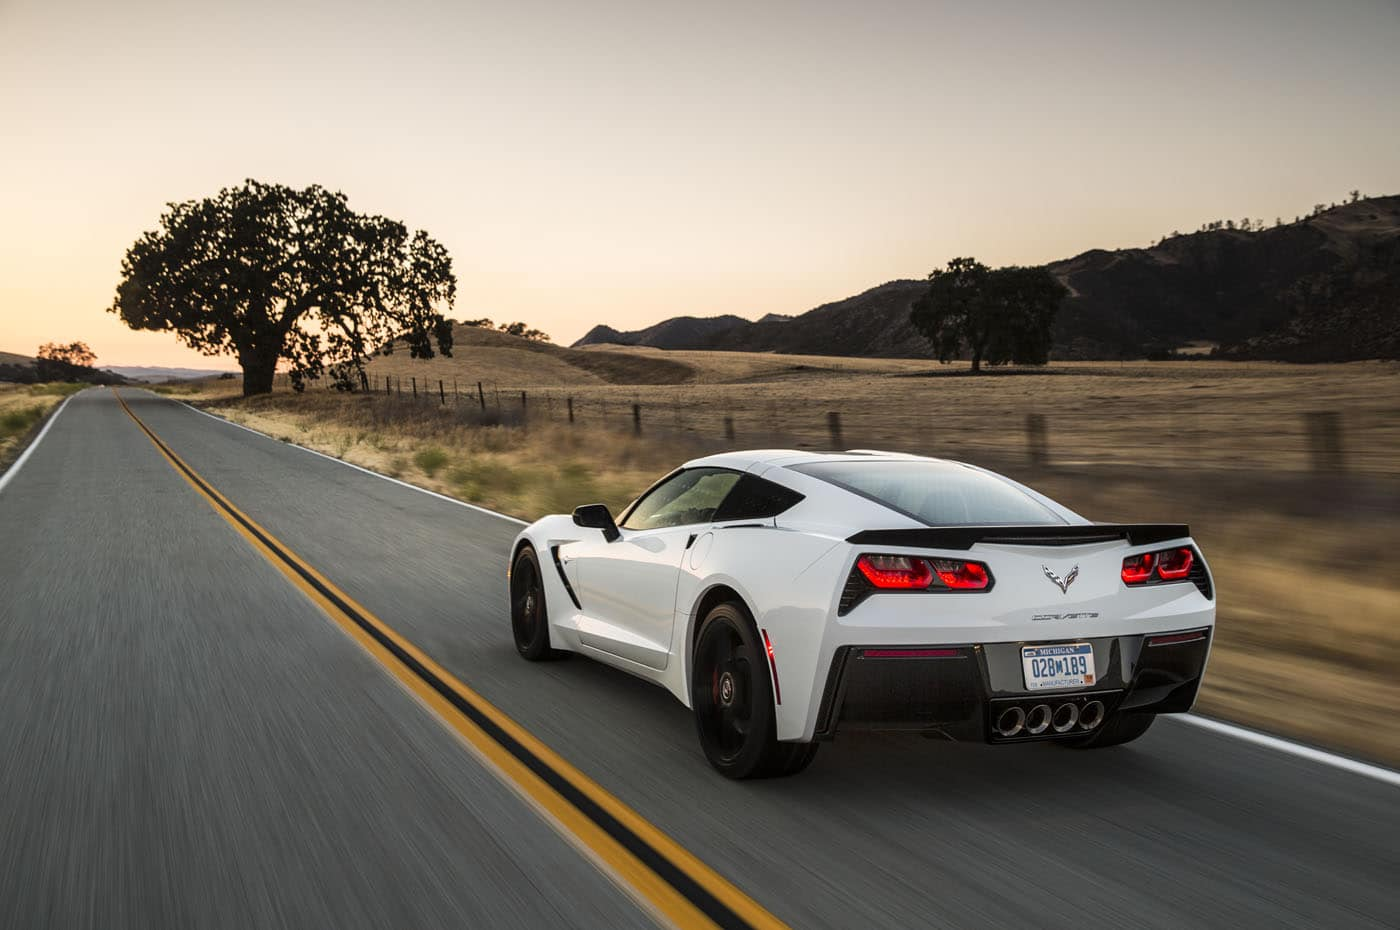 2020 Toyota Supra vs 2019 Chevrolet Corvette